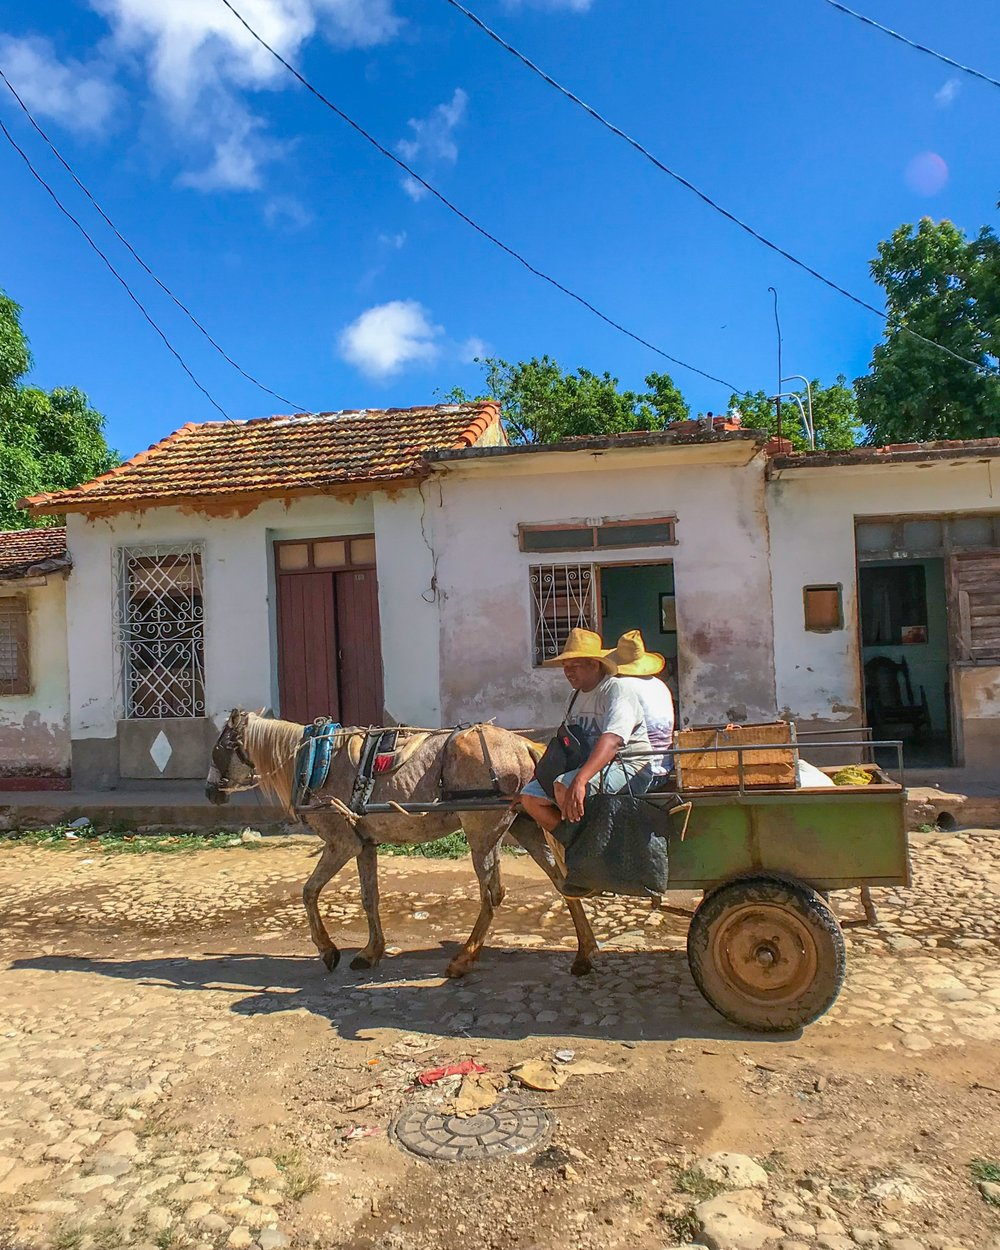 Typical street scene in Trinidad, Cuba